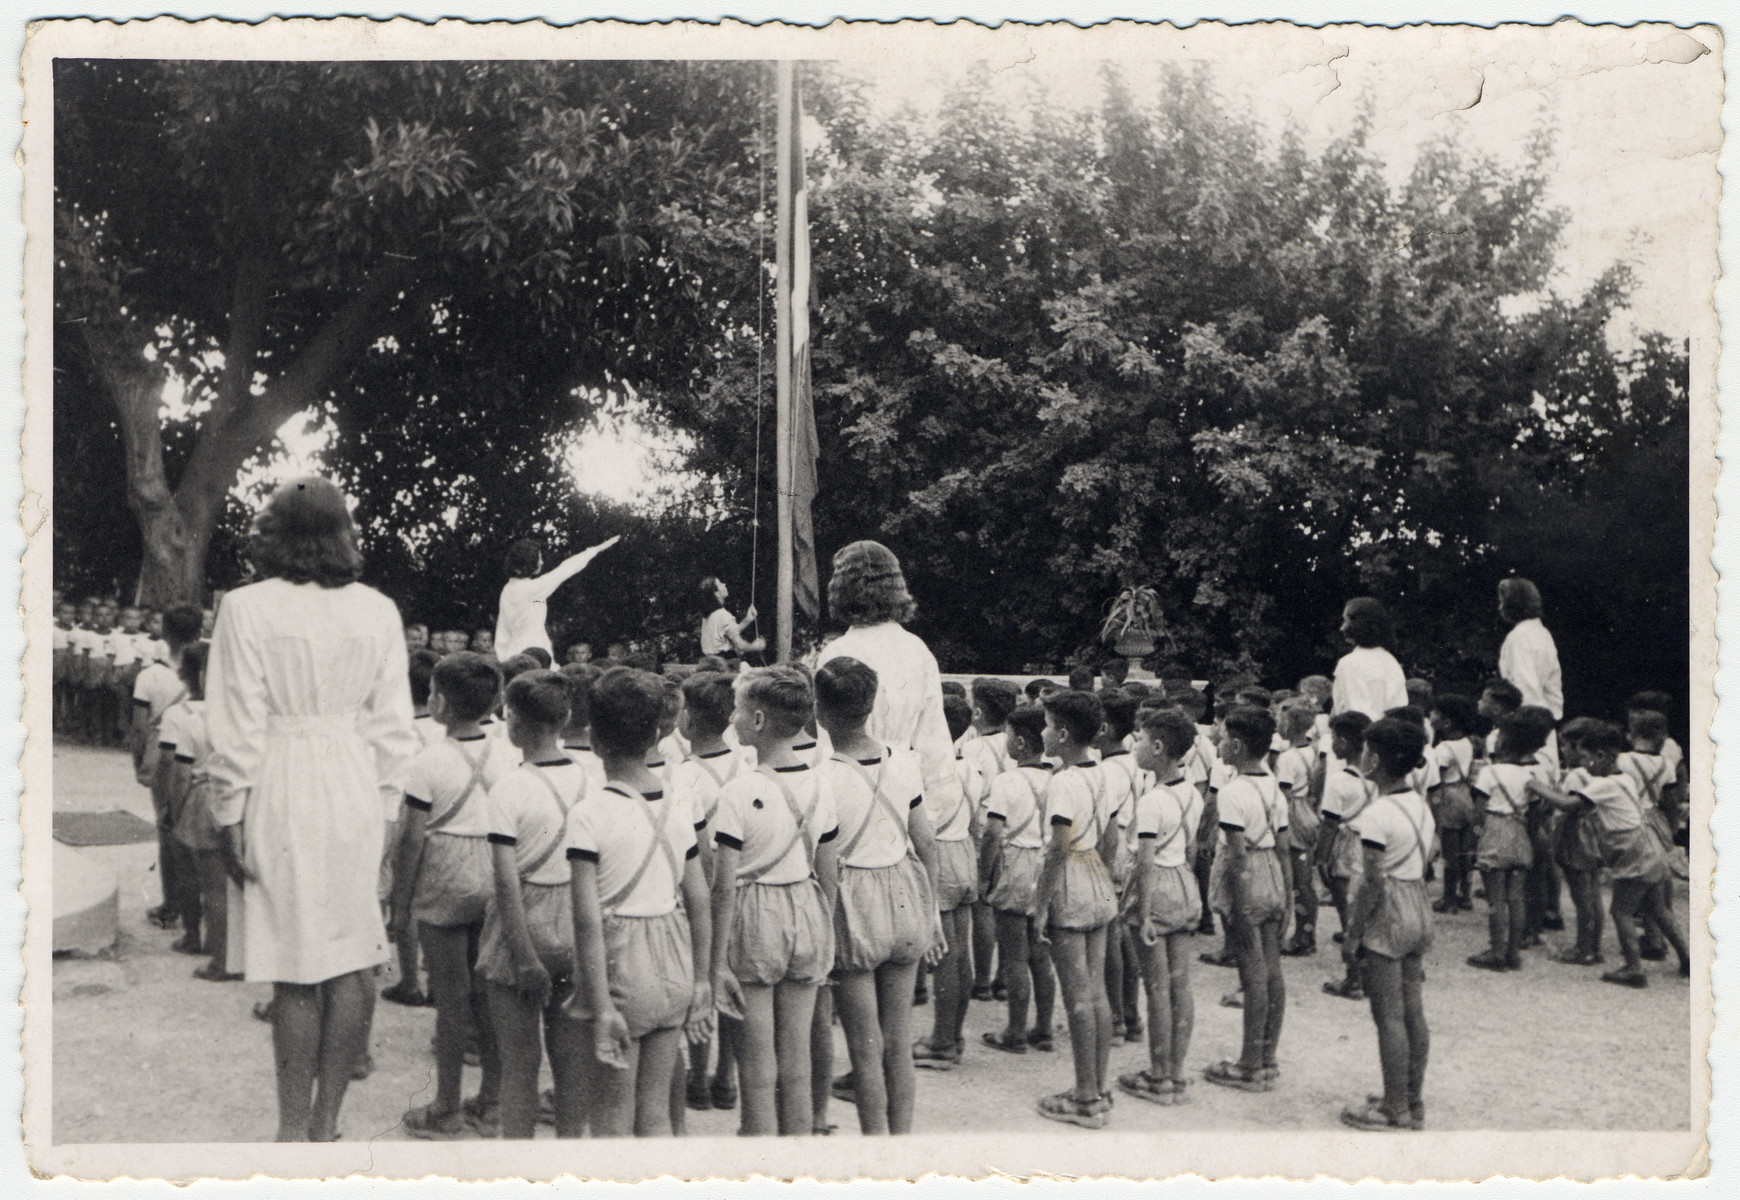 Young children led by young women stand at attention at a flag raising.  The leaders of the group give the Nazi salute.